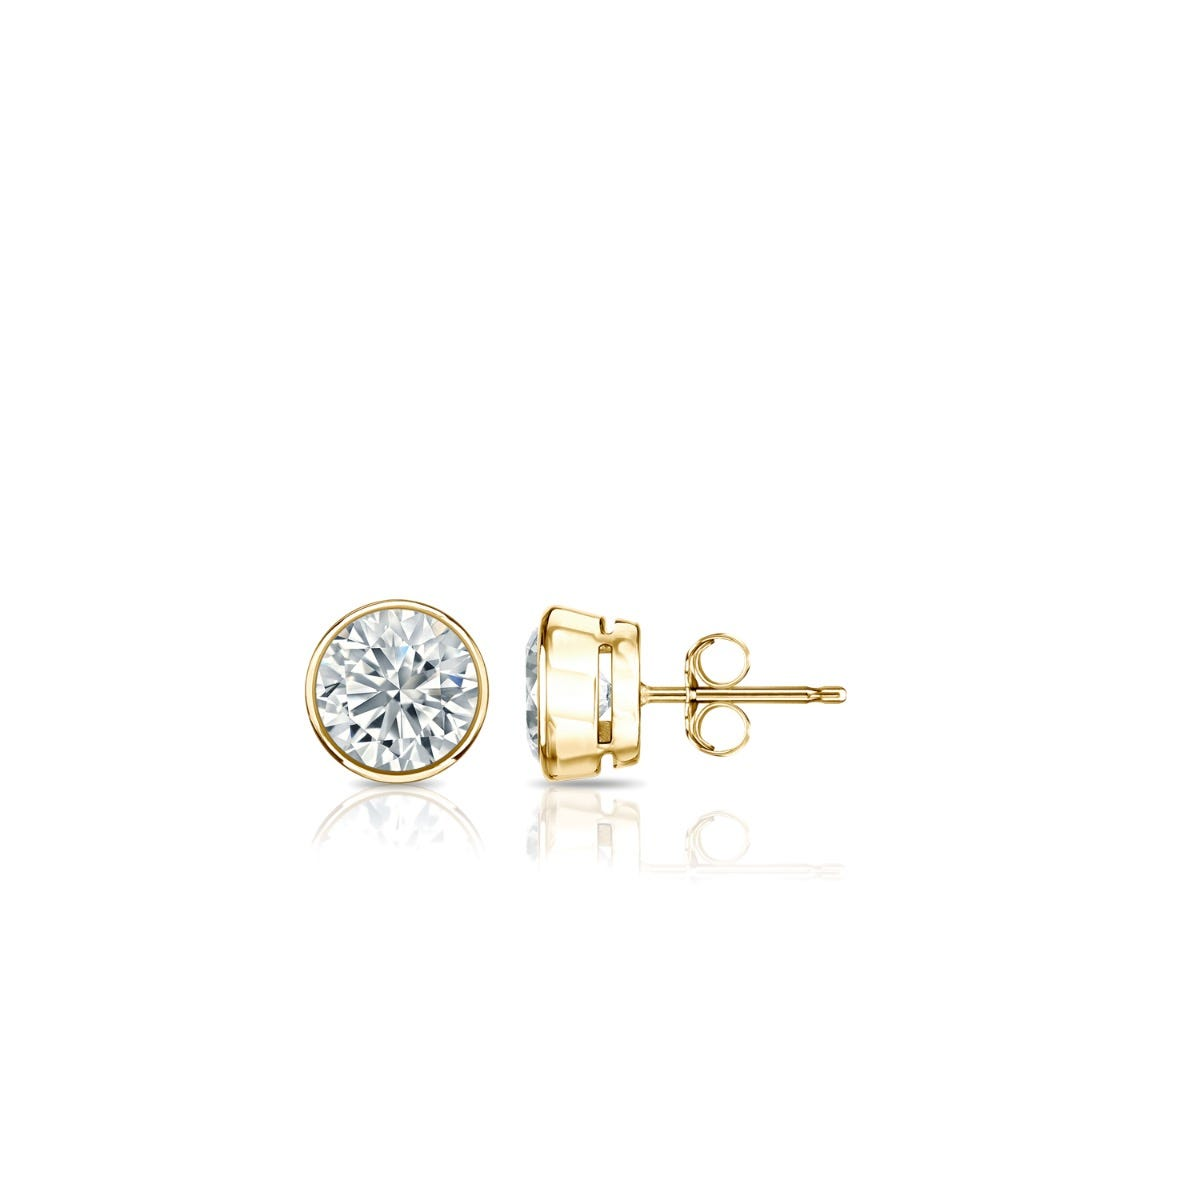 Diamond Round Bezel-Set 1/10ctw. Solitaire Stud (IJ-VS2) Earrings in 18K Yellow Gold